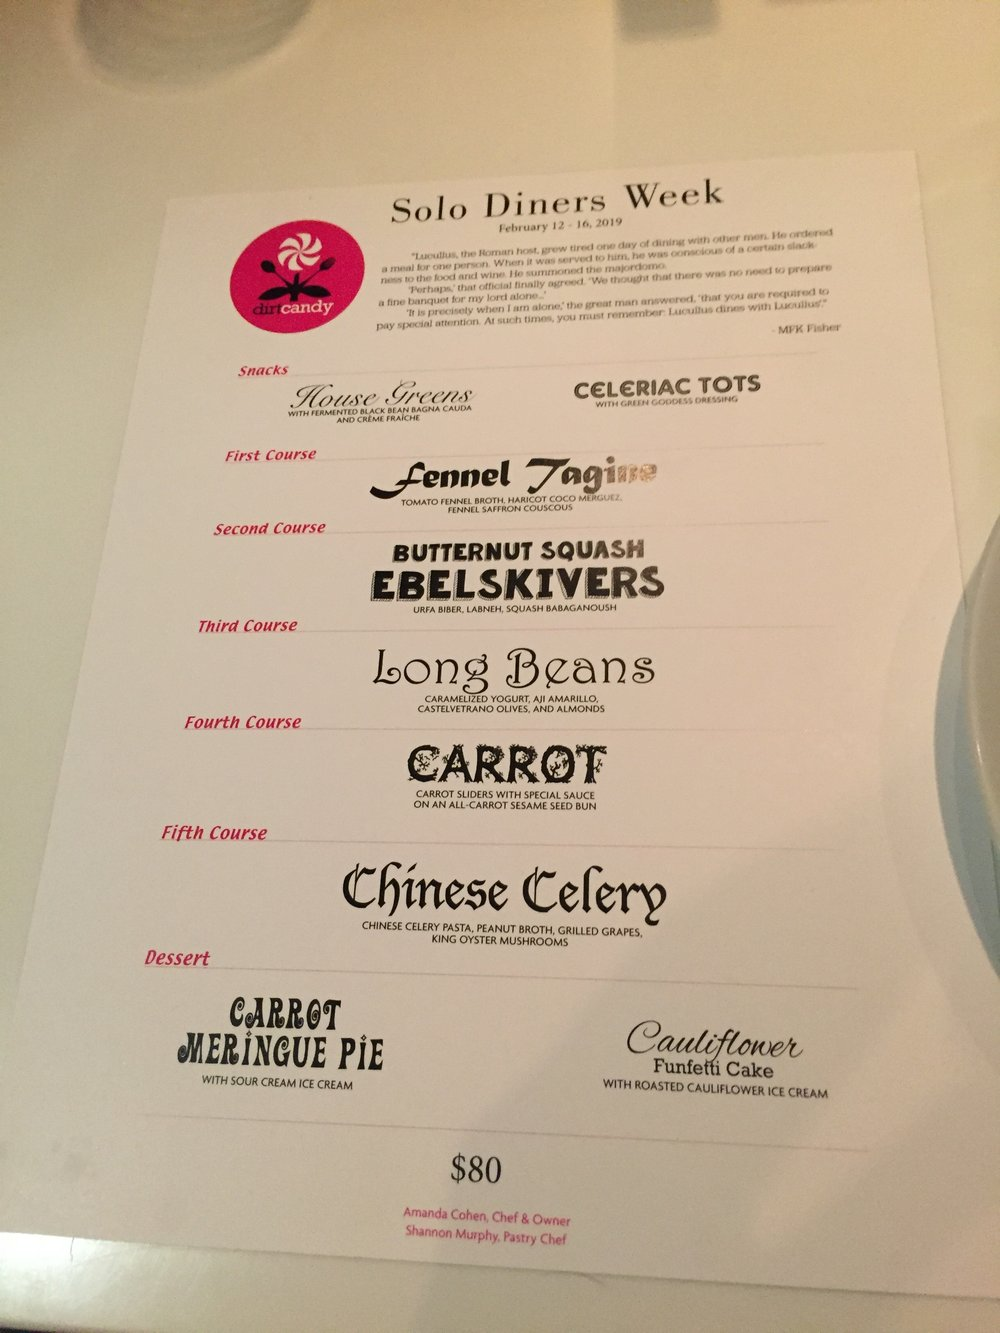 The menu for Solo Diner's Week